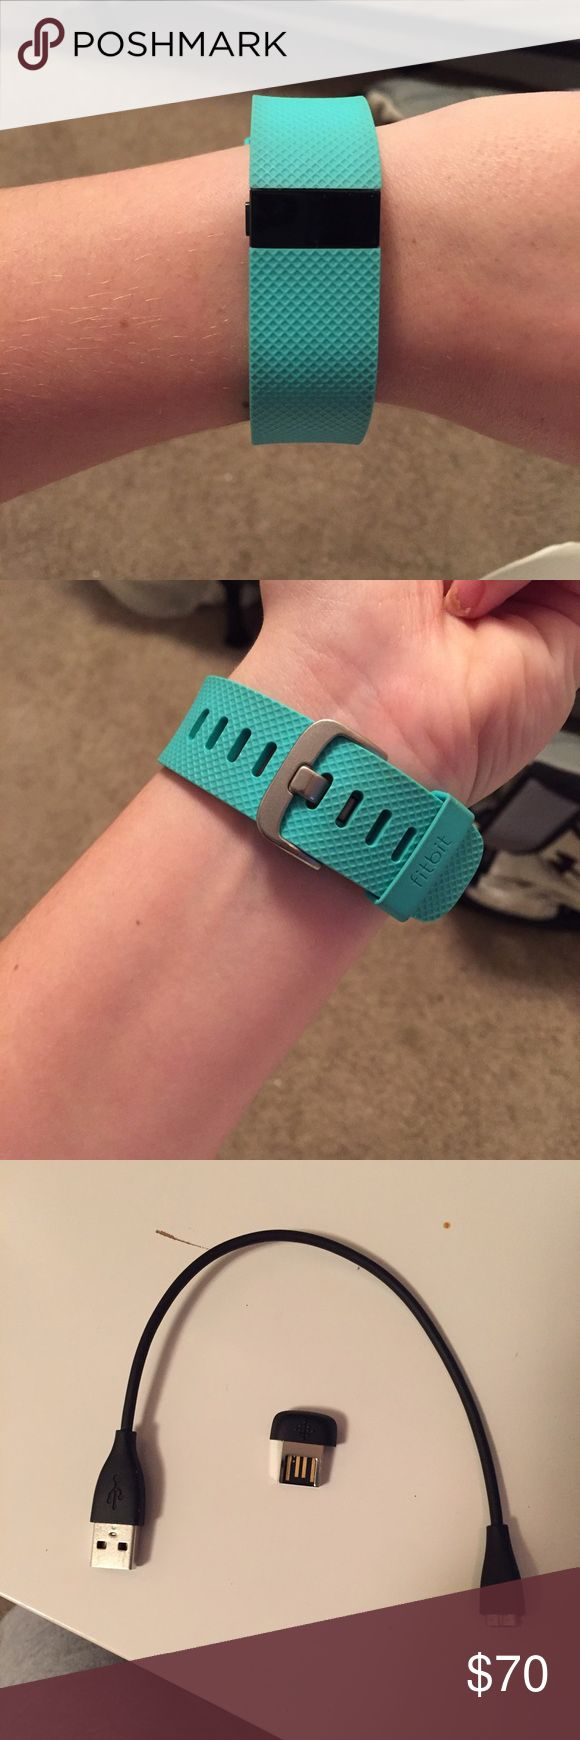 Fitbit Charge HR Teal, Small, Like New Fitbit charge HR. Size small band. Bought in mid-October so it's like new. Comes with original charger cable, toggle, and box with all instructions and pamphlets in the box. This is the older generation Charge HR but it has step count, calories burned, floors climbed, heart rate, and a timer that can be turned on and used on the watch. It also has a watch and four different watch faces that you can choose from. Will accept all reasonable offers! Fitbit…